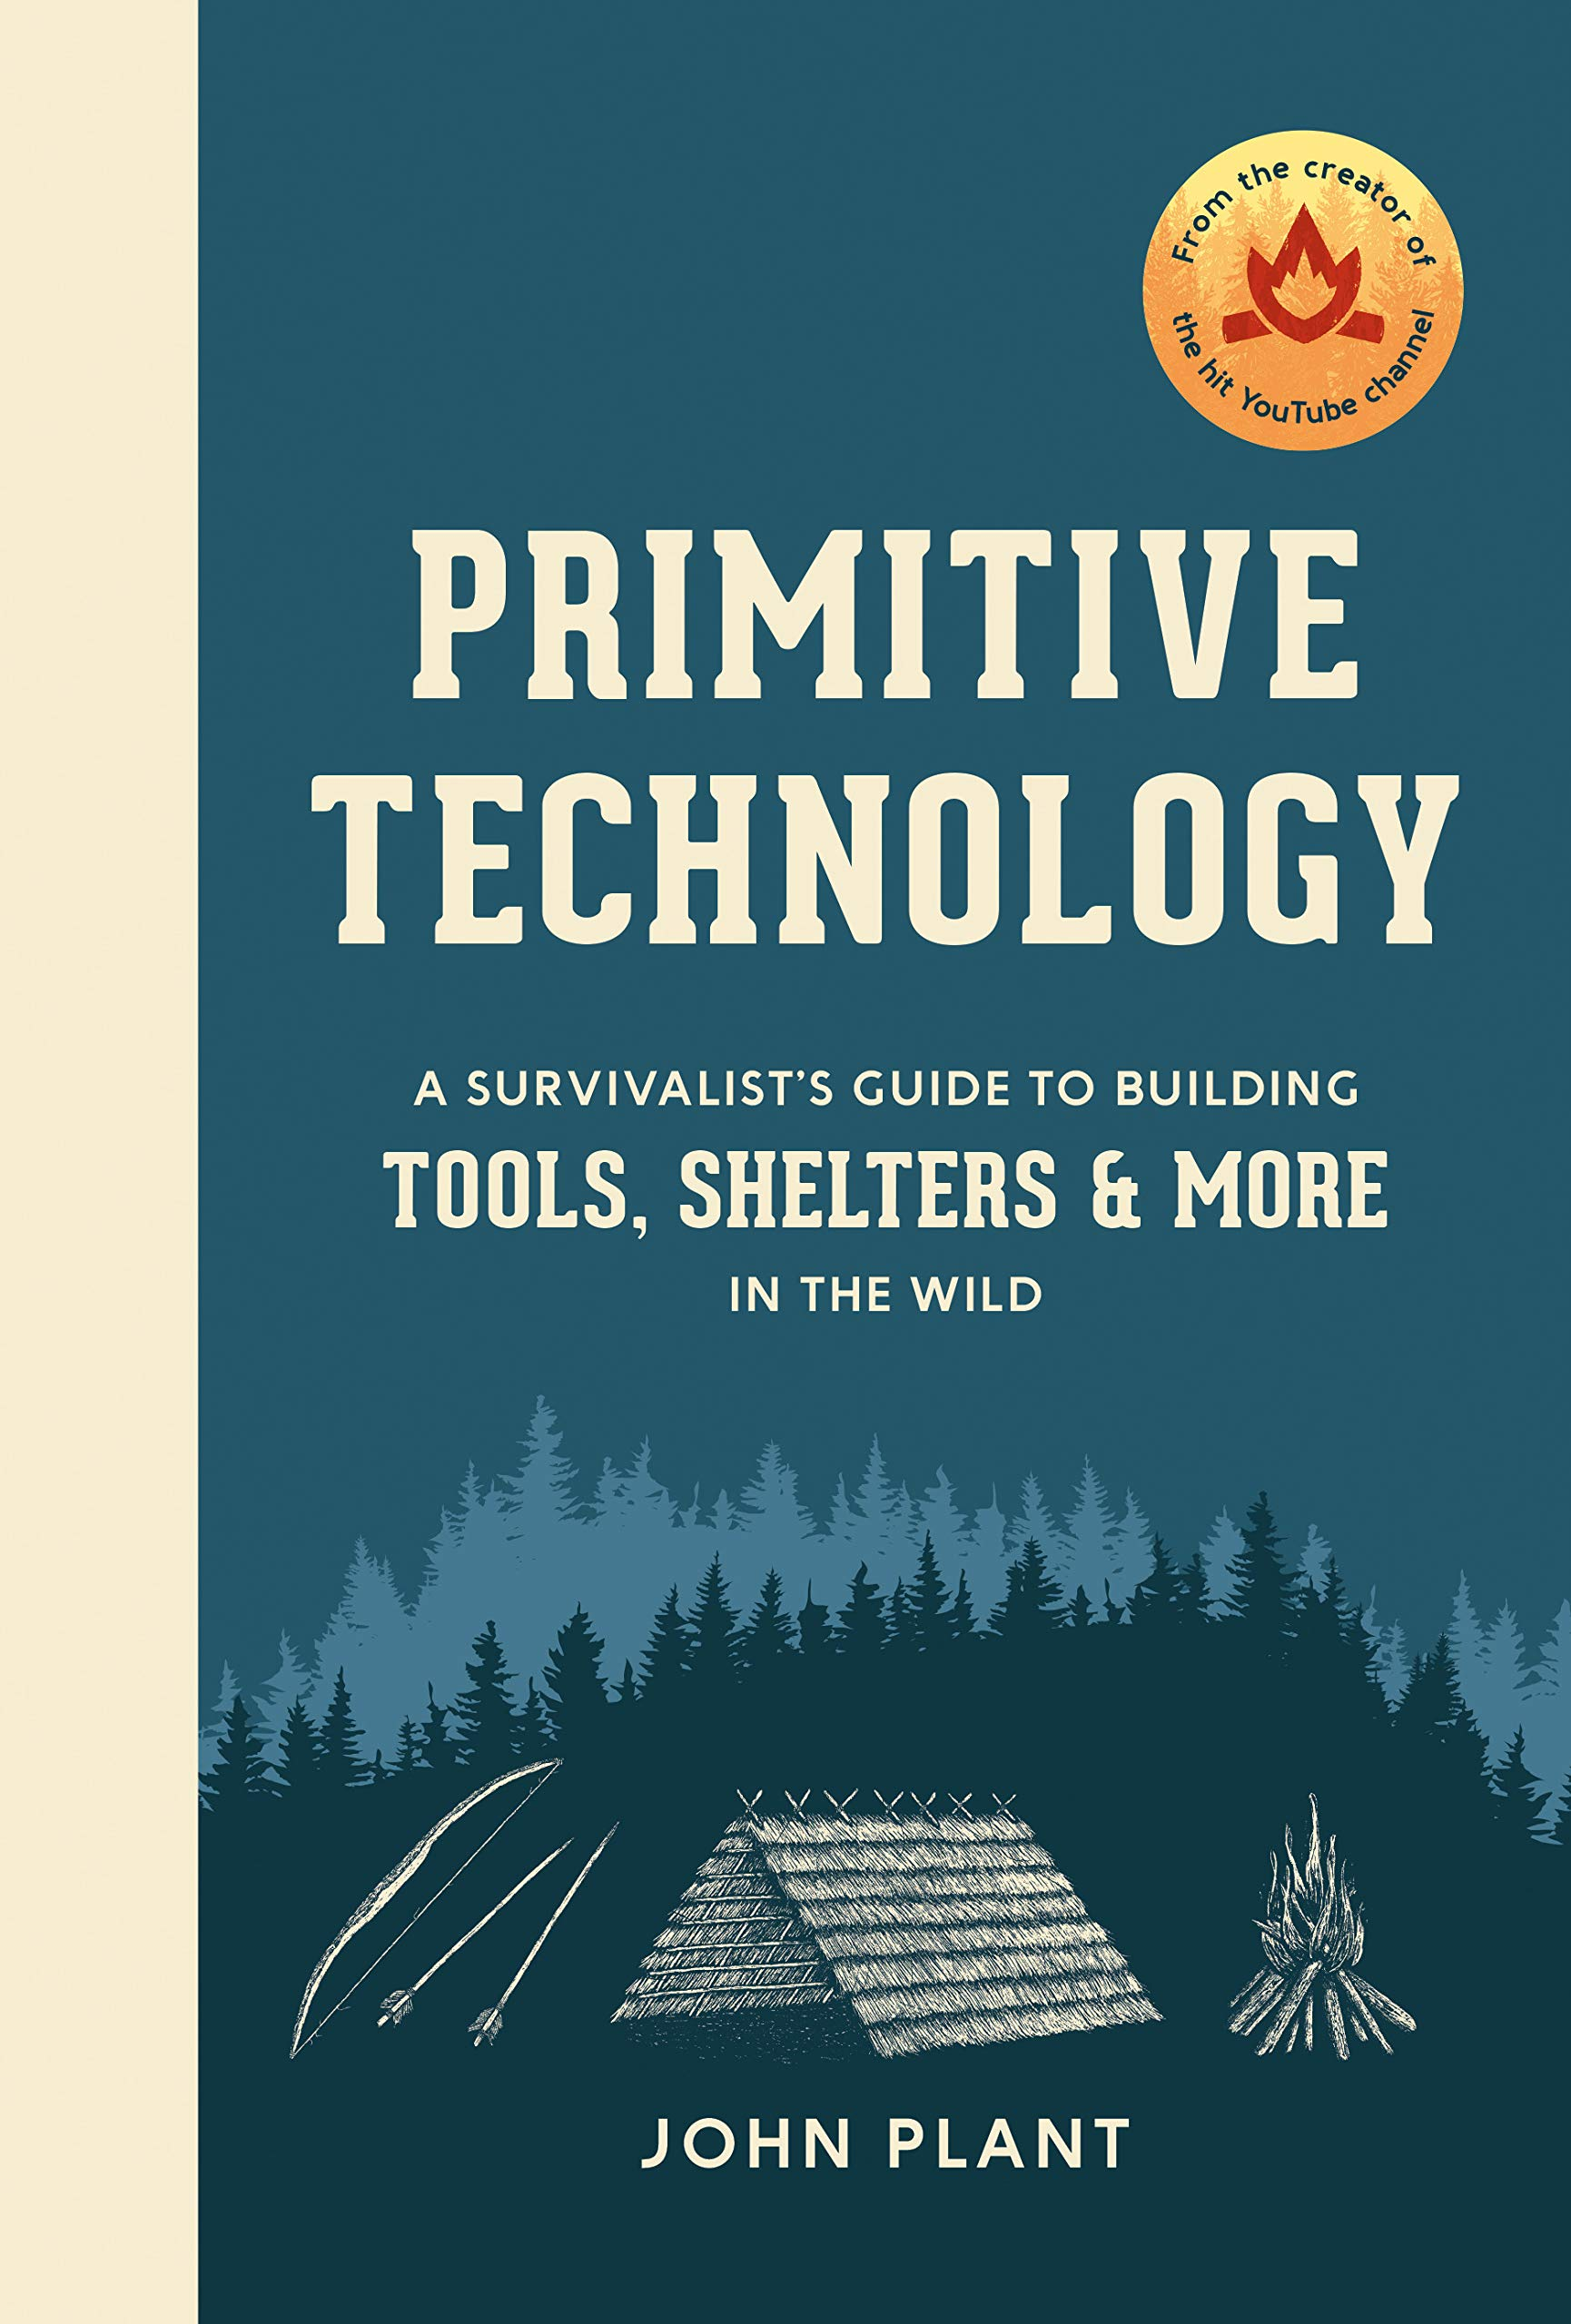 Primitive Technology: A Survivalist's Guide to Building Tools, Shelters, and More in the Wild book cover